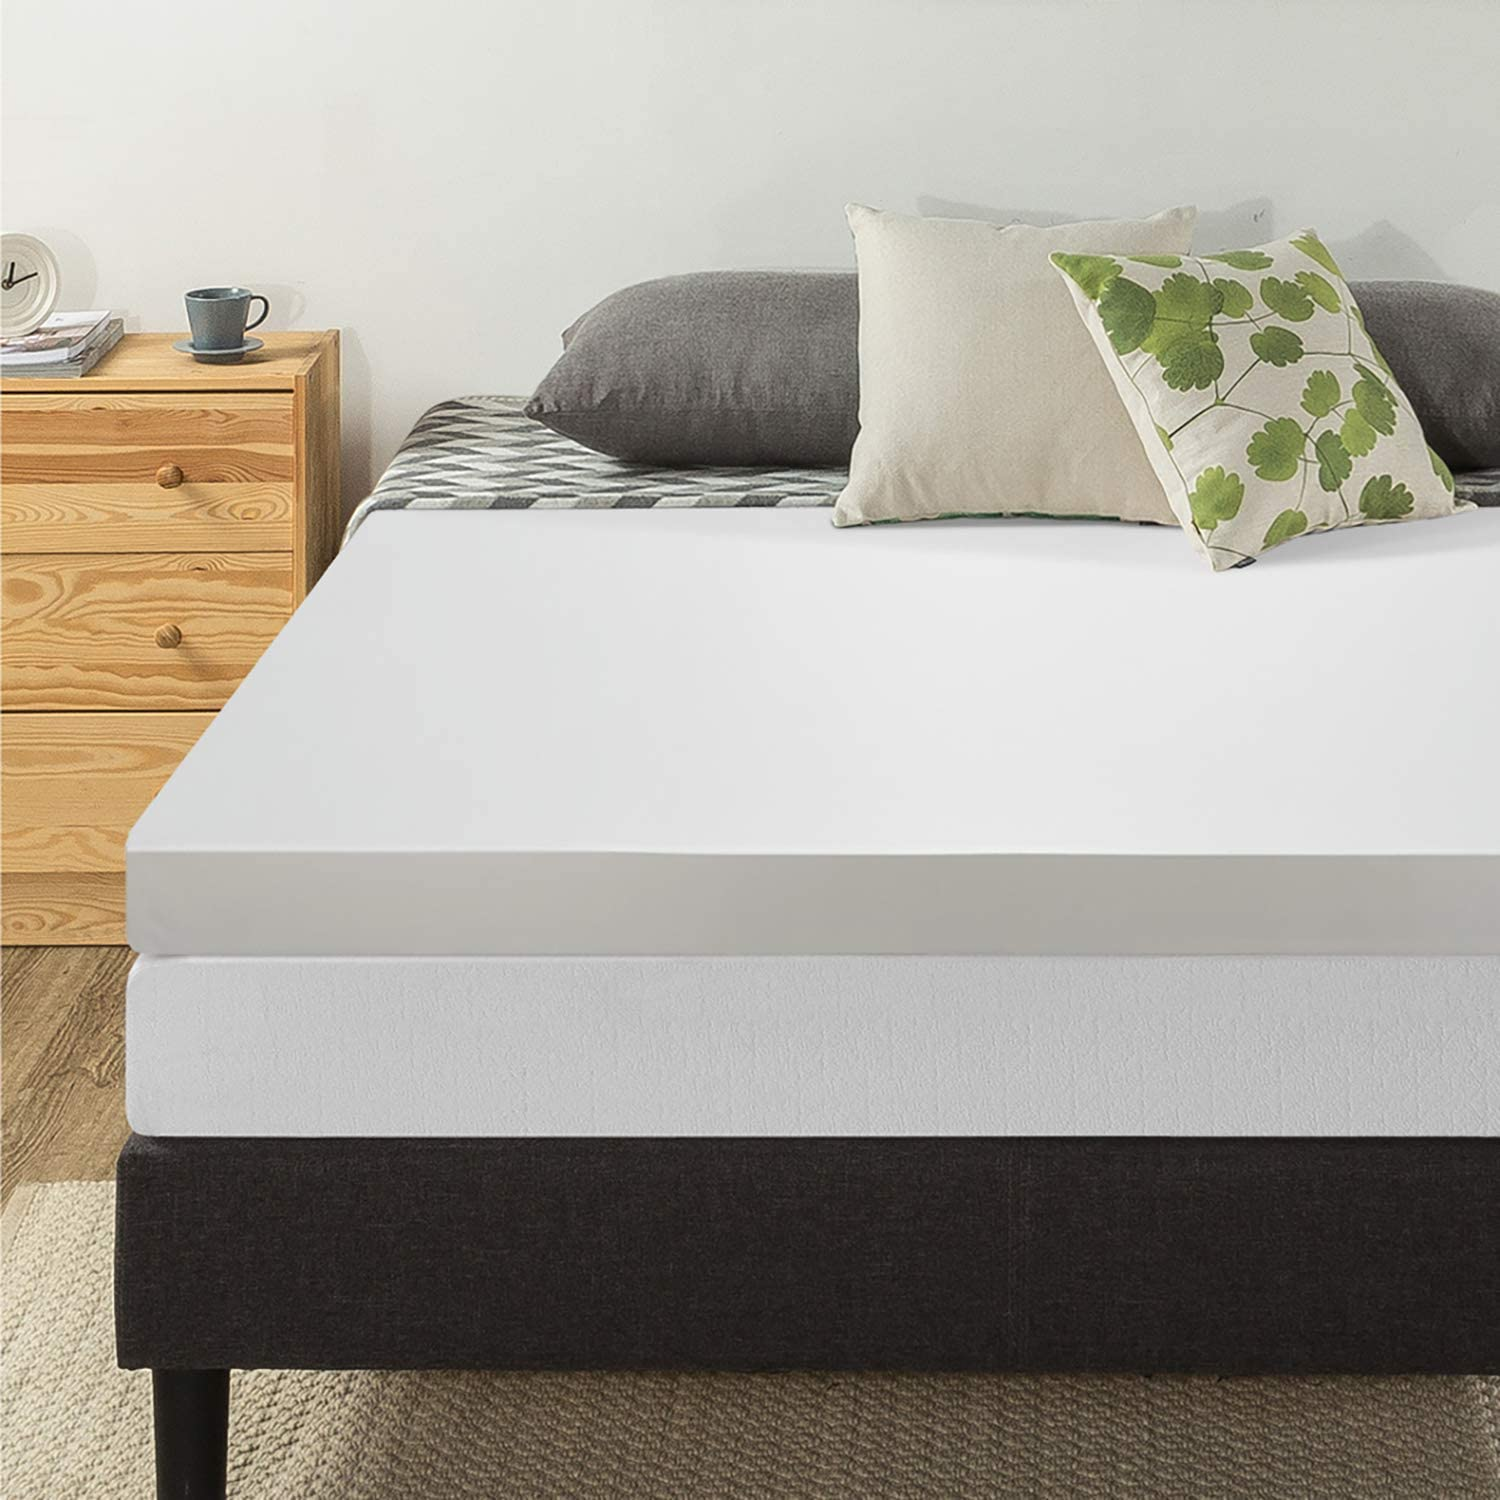 Amazon Com Best Price Mattress 4 Memory Foam Mattress Topper